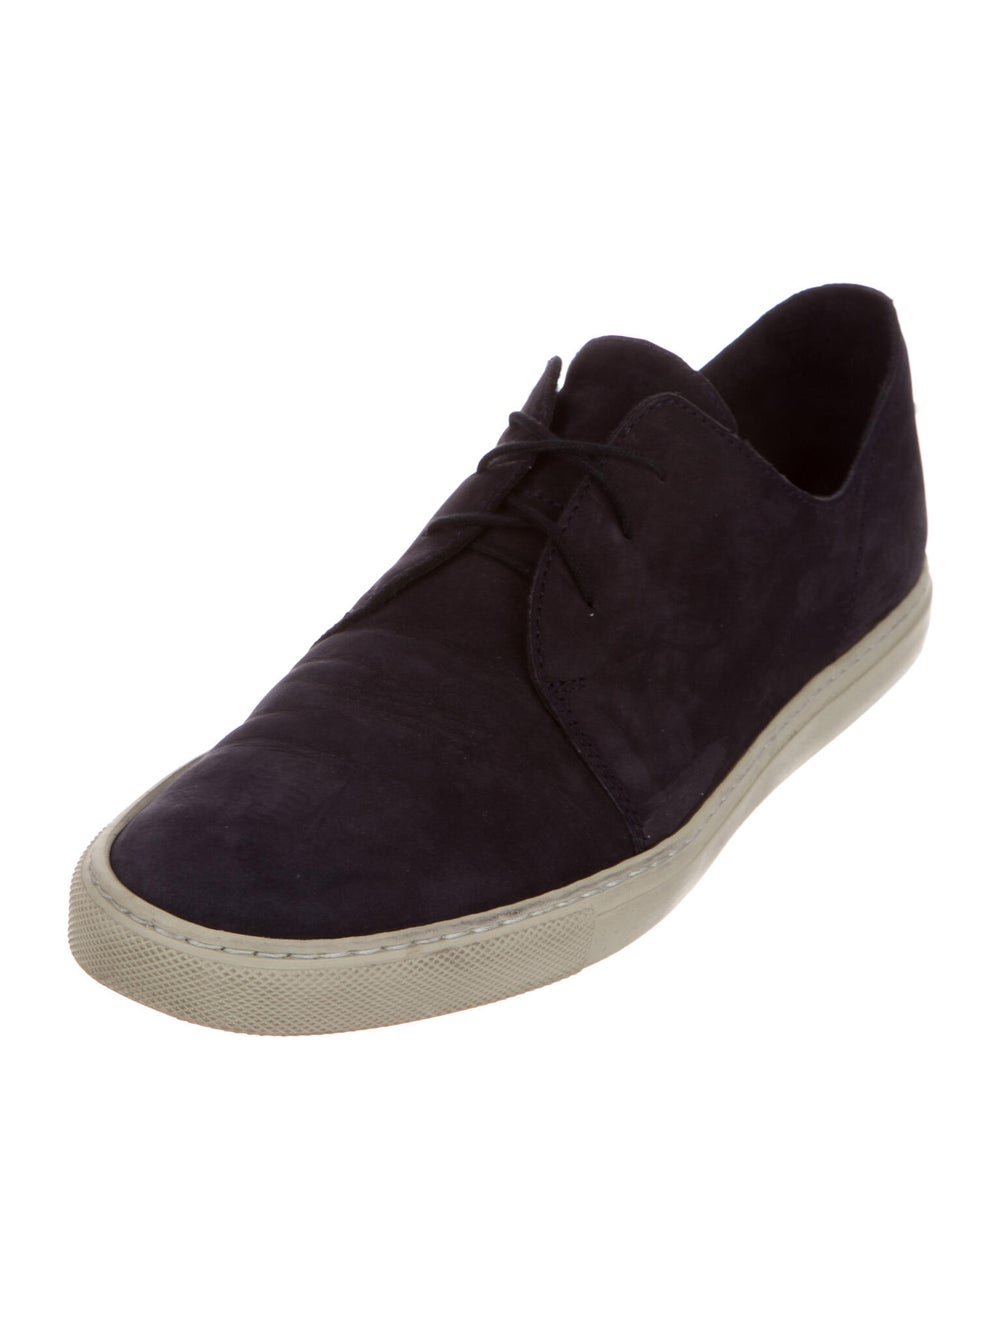 Common Projects Nubuck Sneakers Blue - image 2